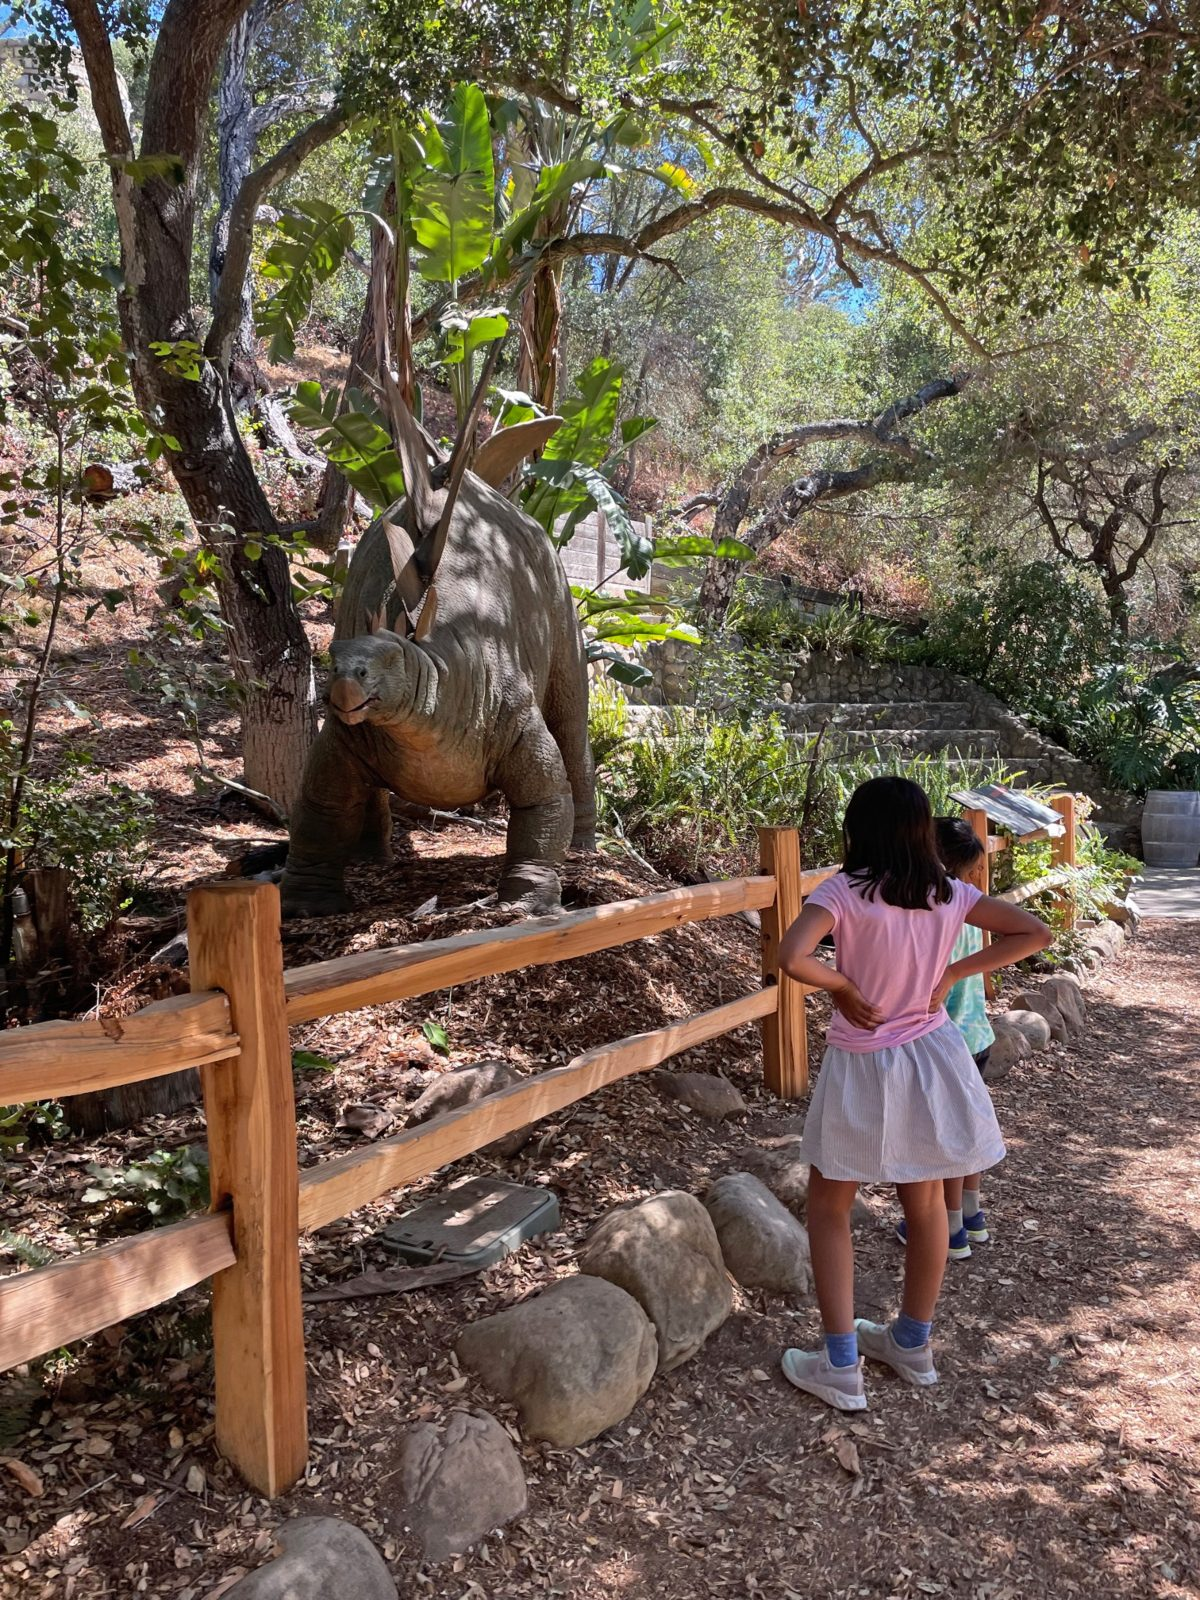 Things to Do in Santa Barbara with Kids